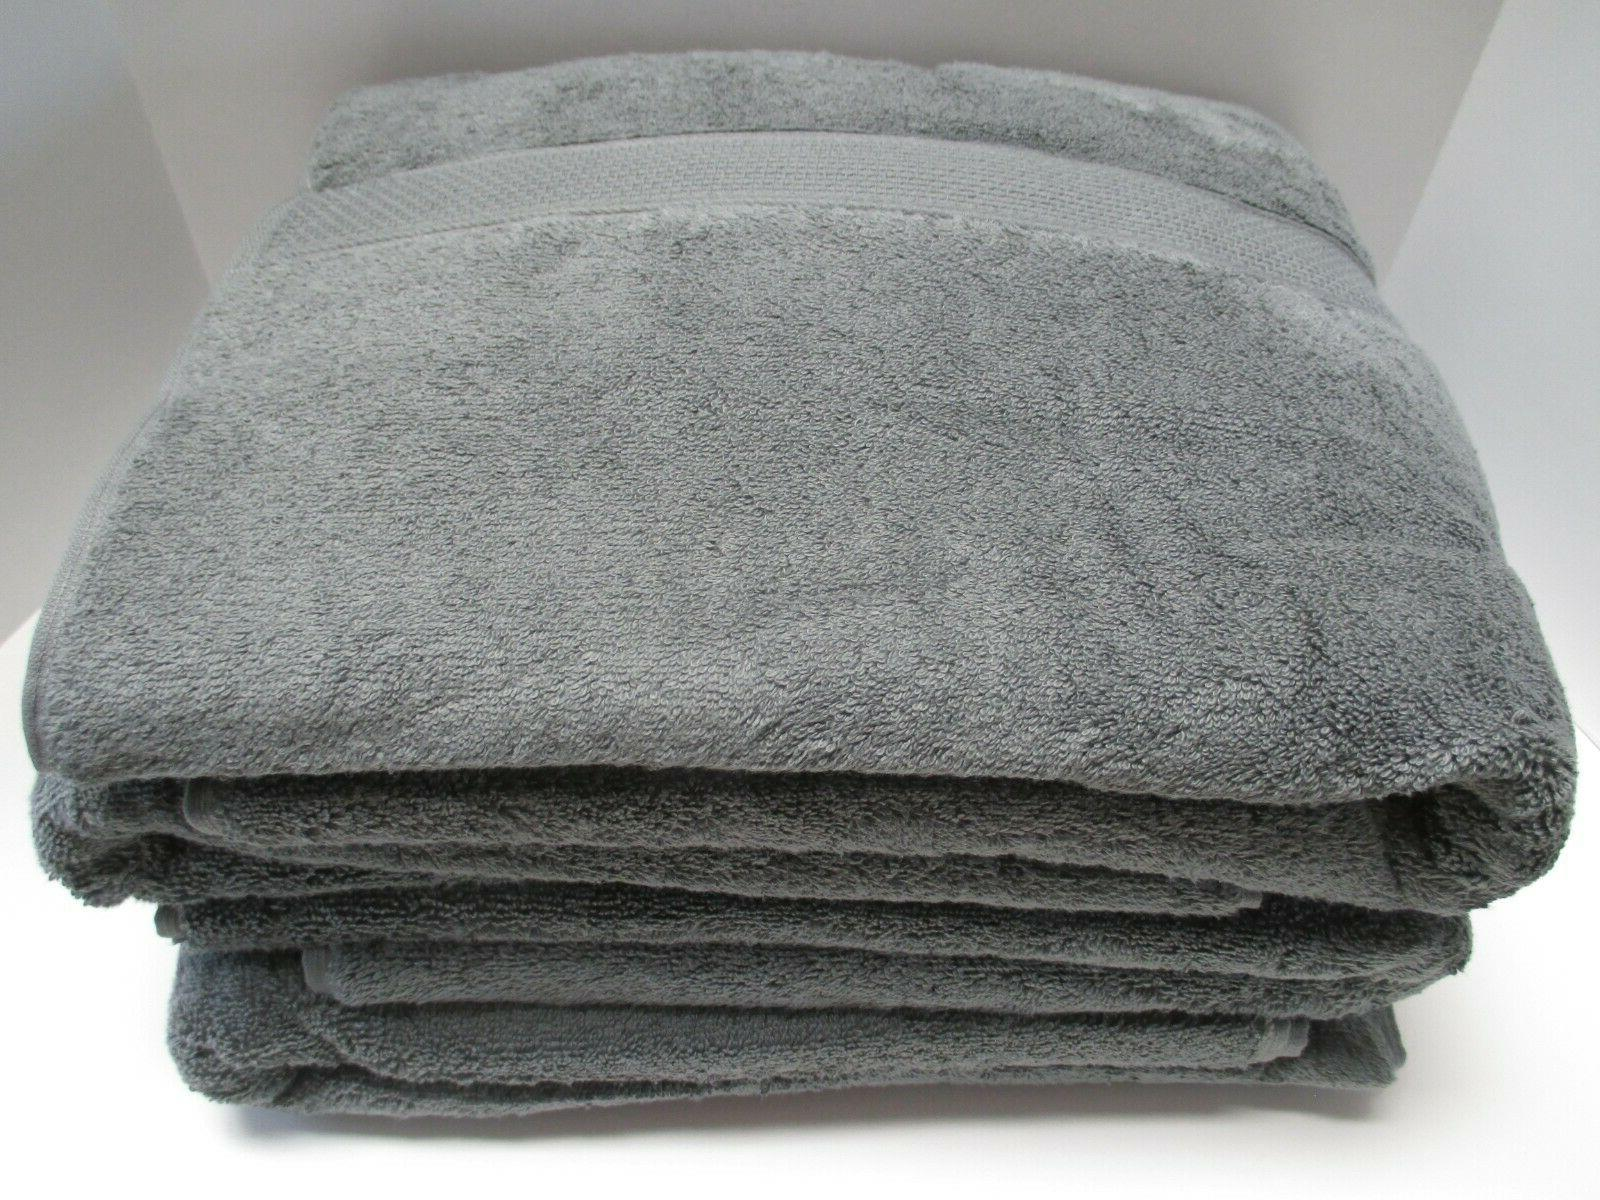 Maura Bath Turkish Cotton 4 Piece Extra Thick Absorbent